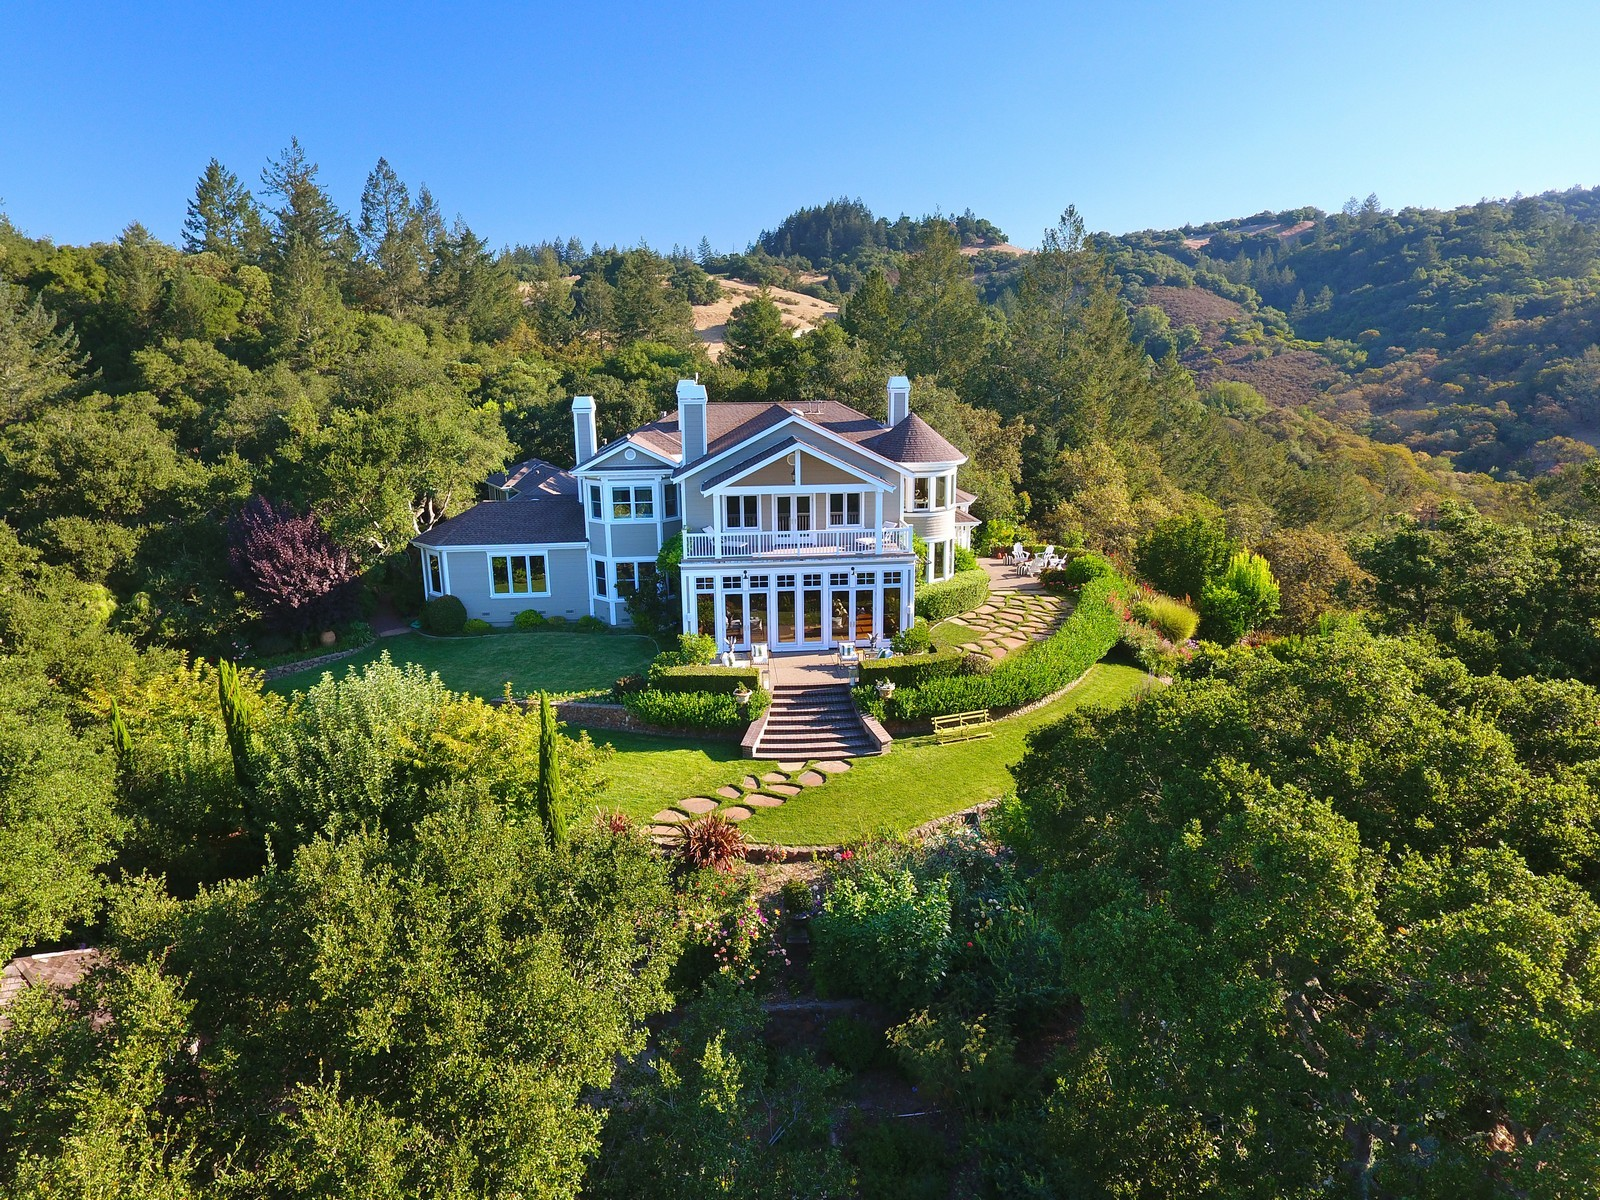 Single Family Home for Sale at Redwood Hills Ranch Estate 1920 Redwood Hill Santa Rosa, 95404 United States